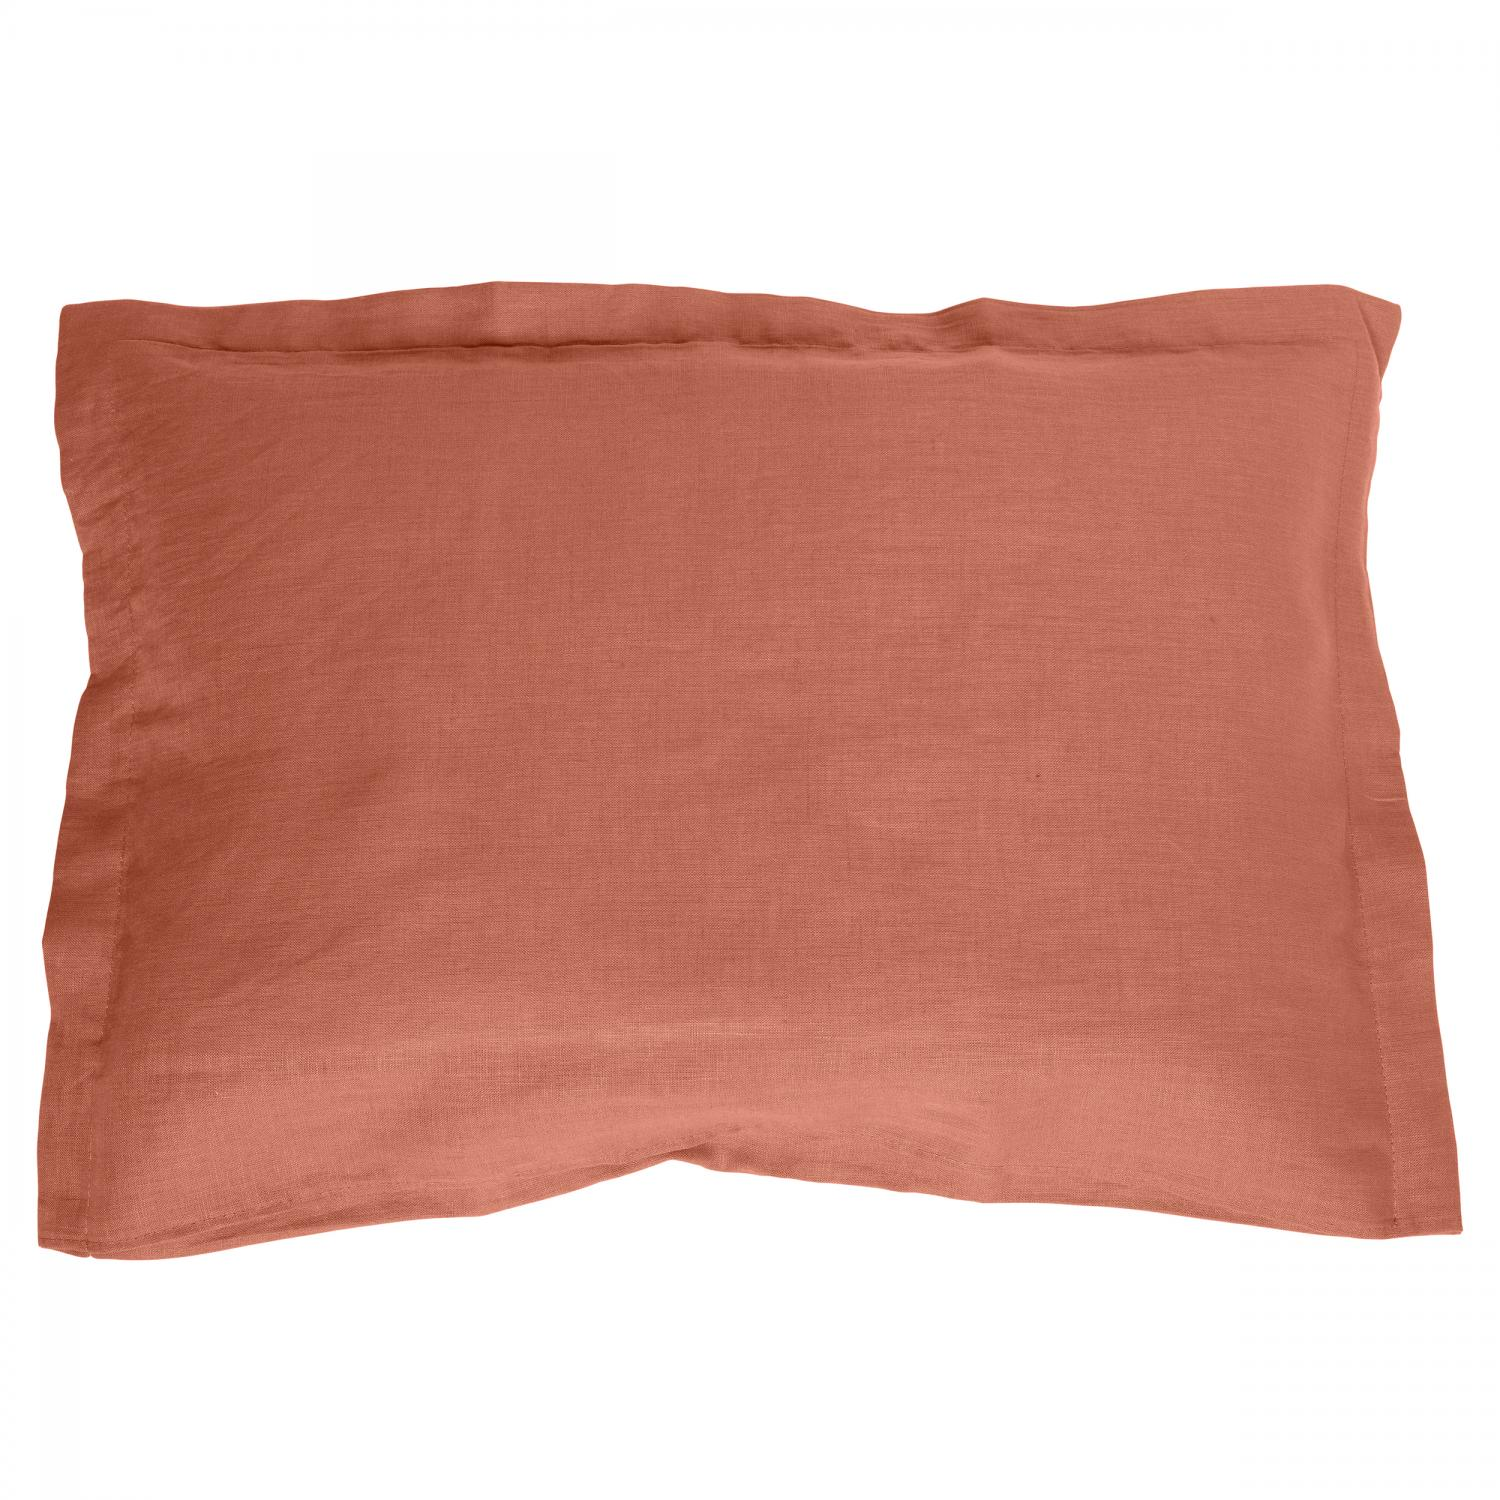 Pillow case | Terracotta | Mood